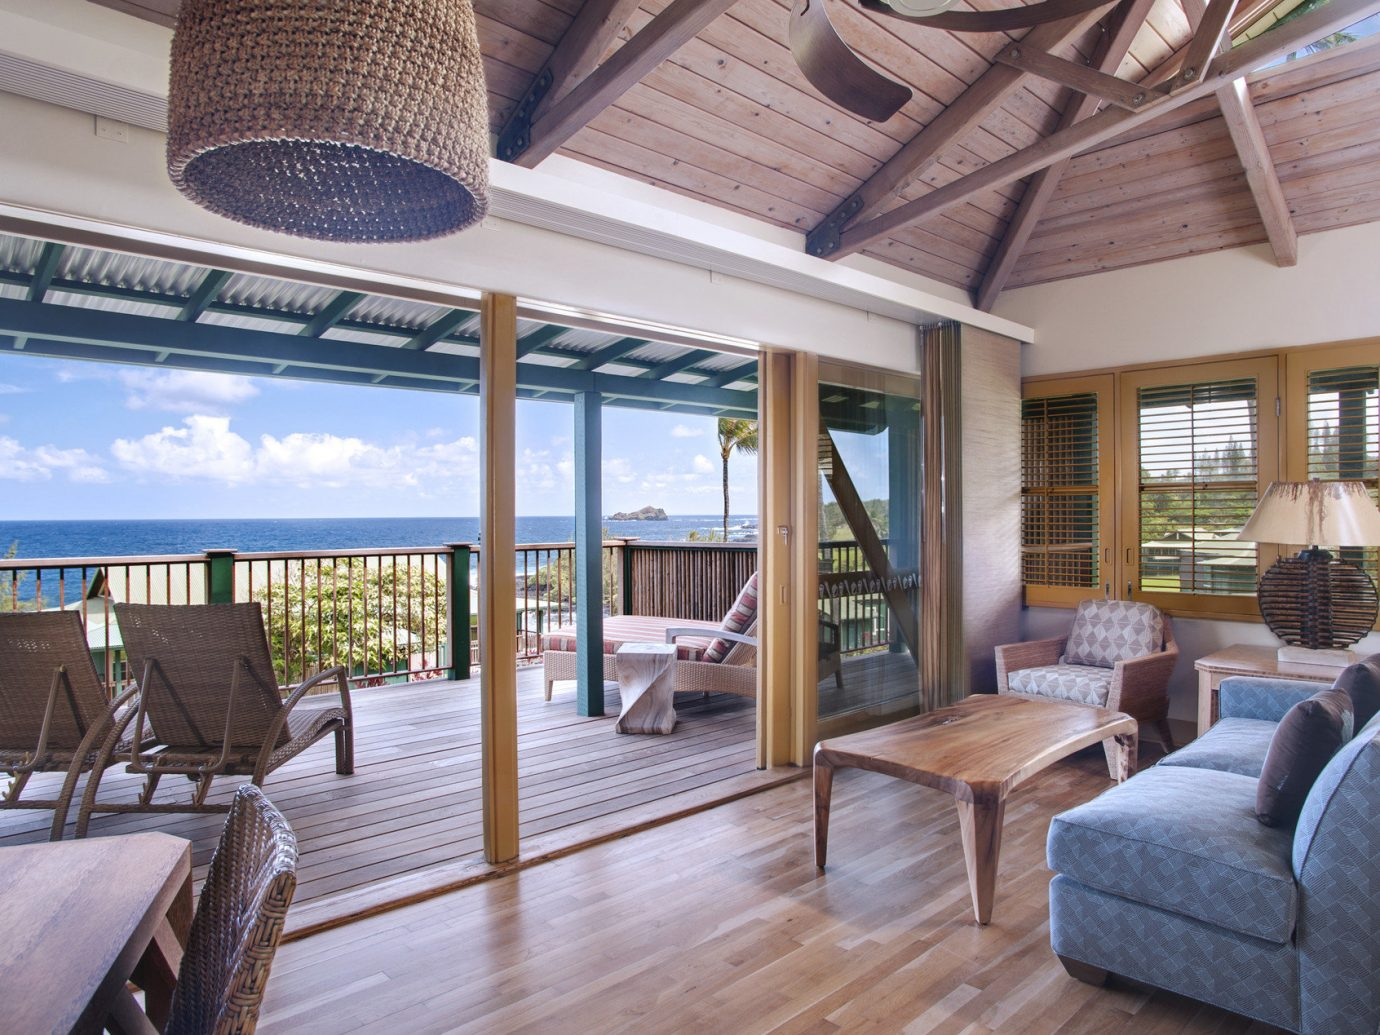 The 10 BEST Hotels in Hawaii, from Waikiki to Maui   Jetsetter